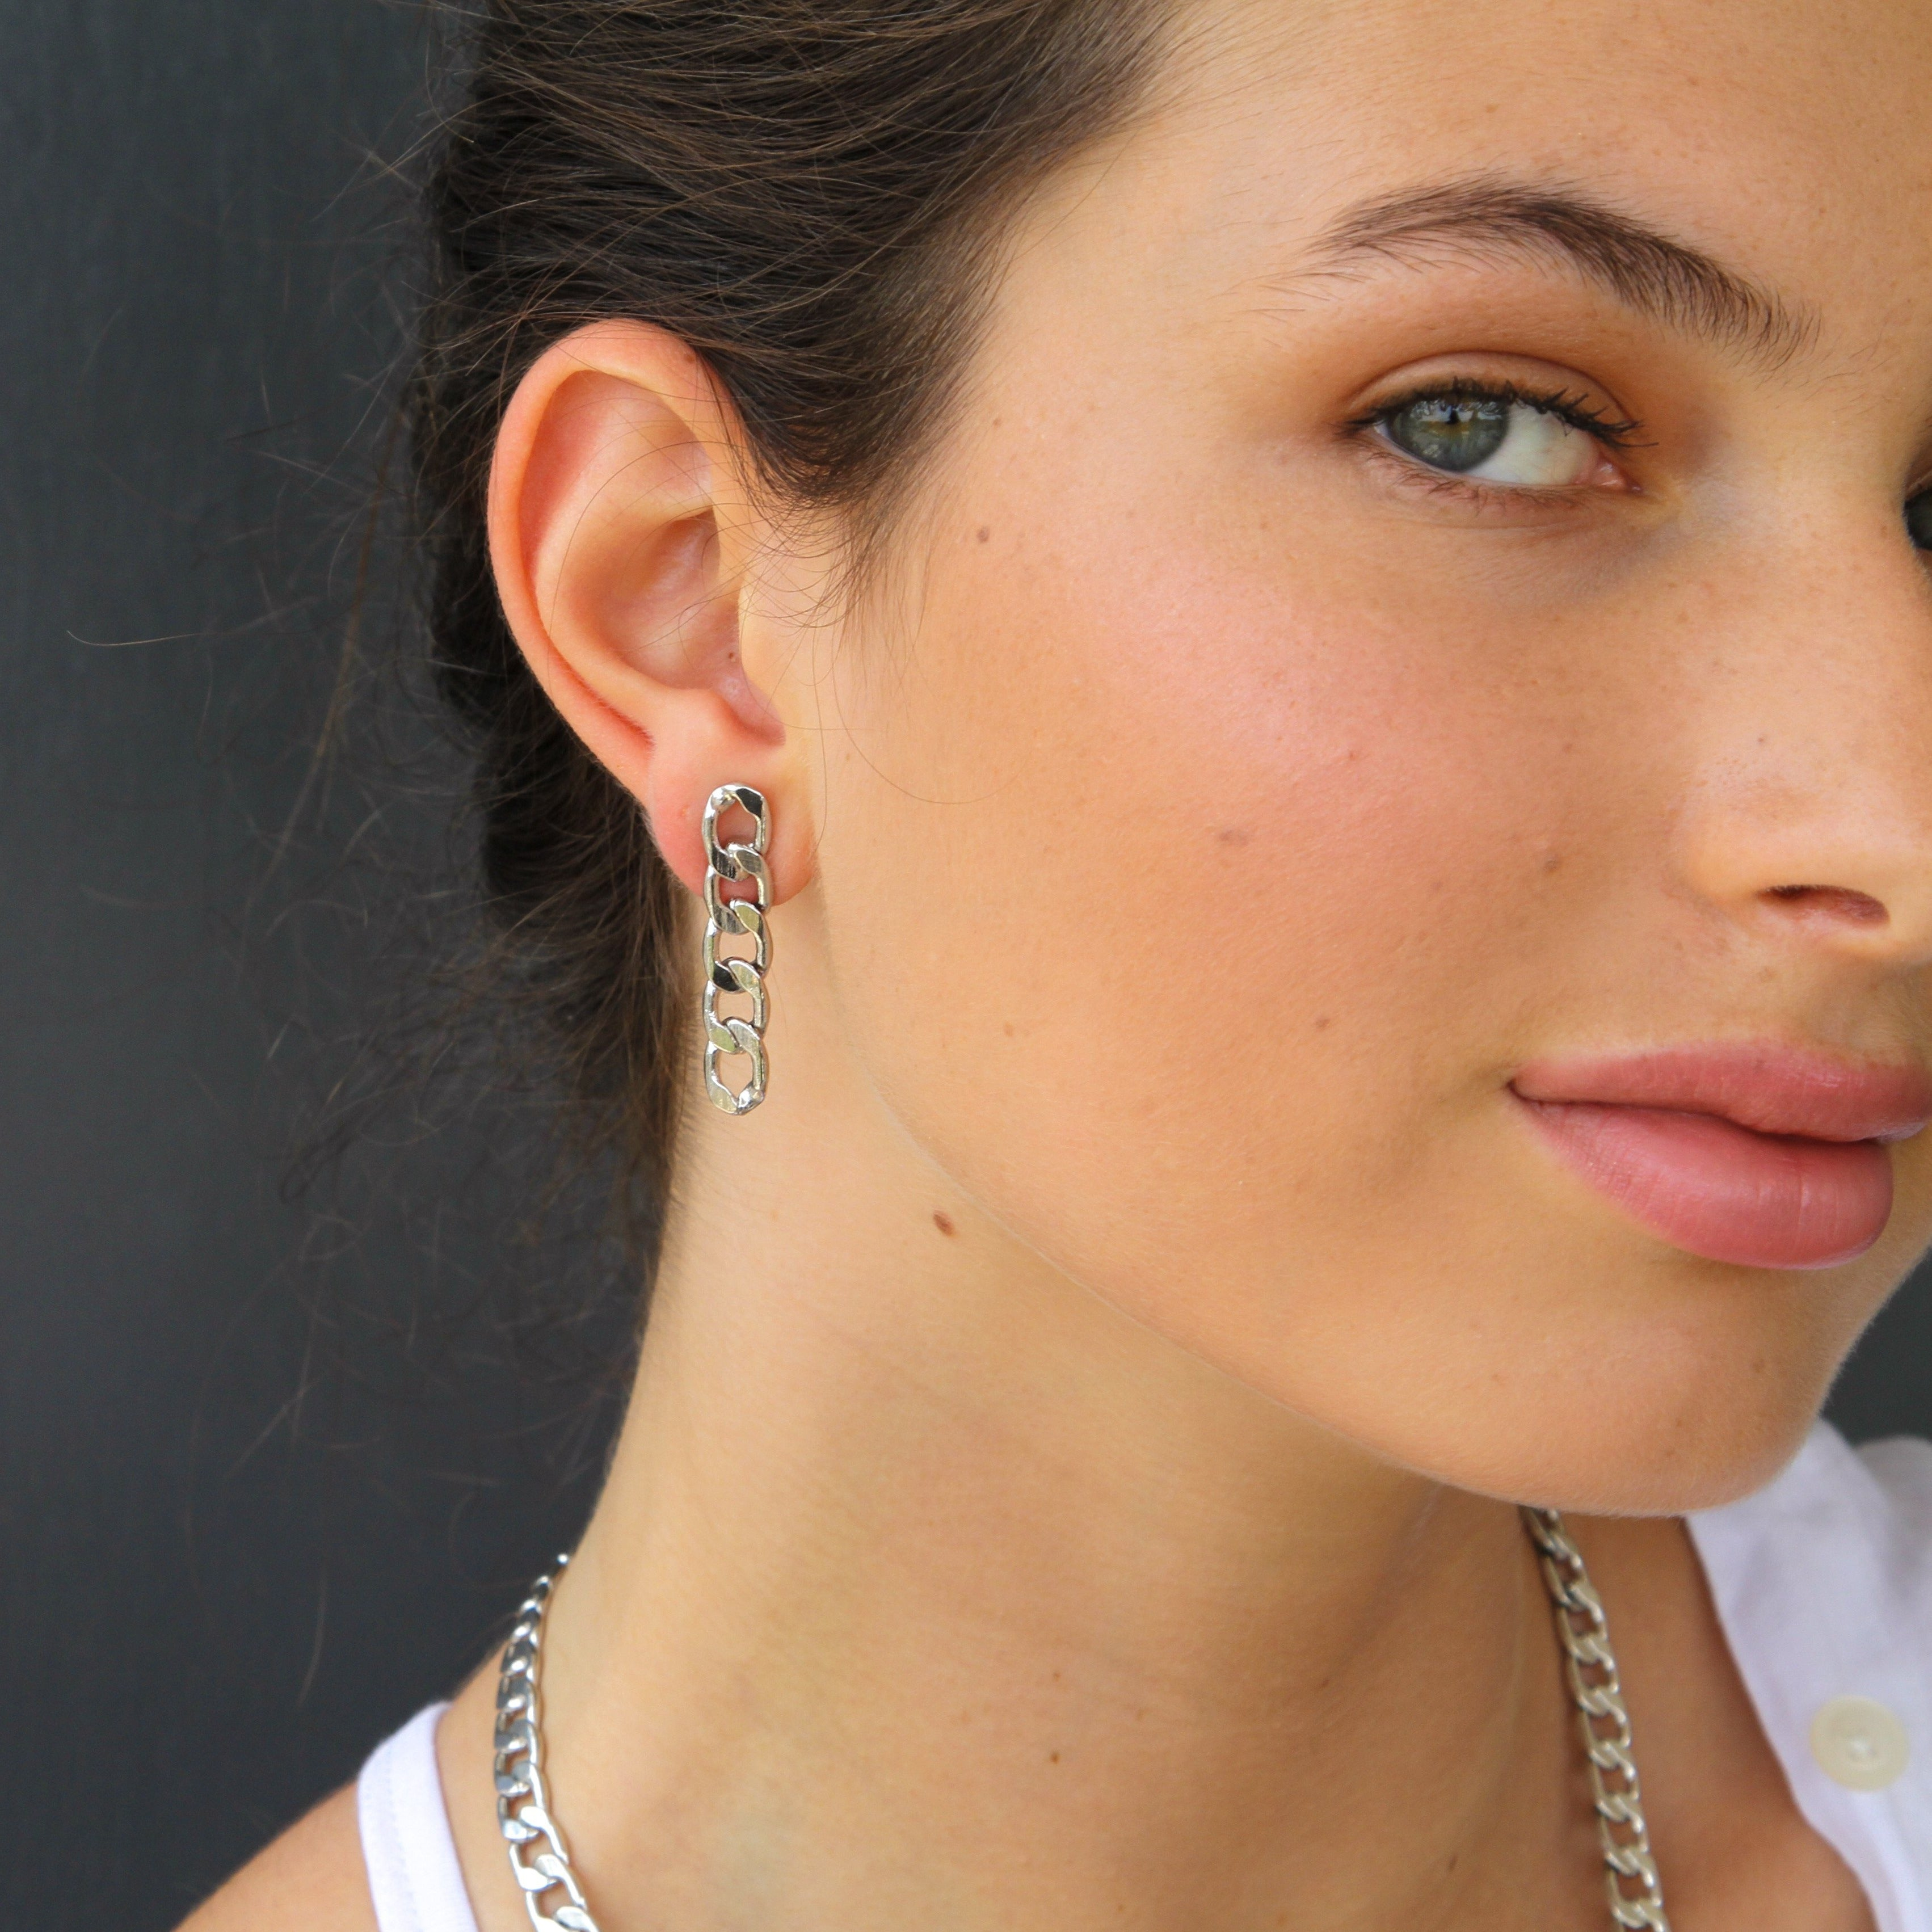 Gourmet5 Earrings - ViaRothstein